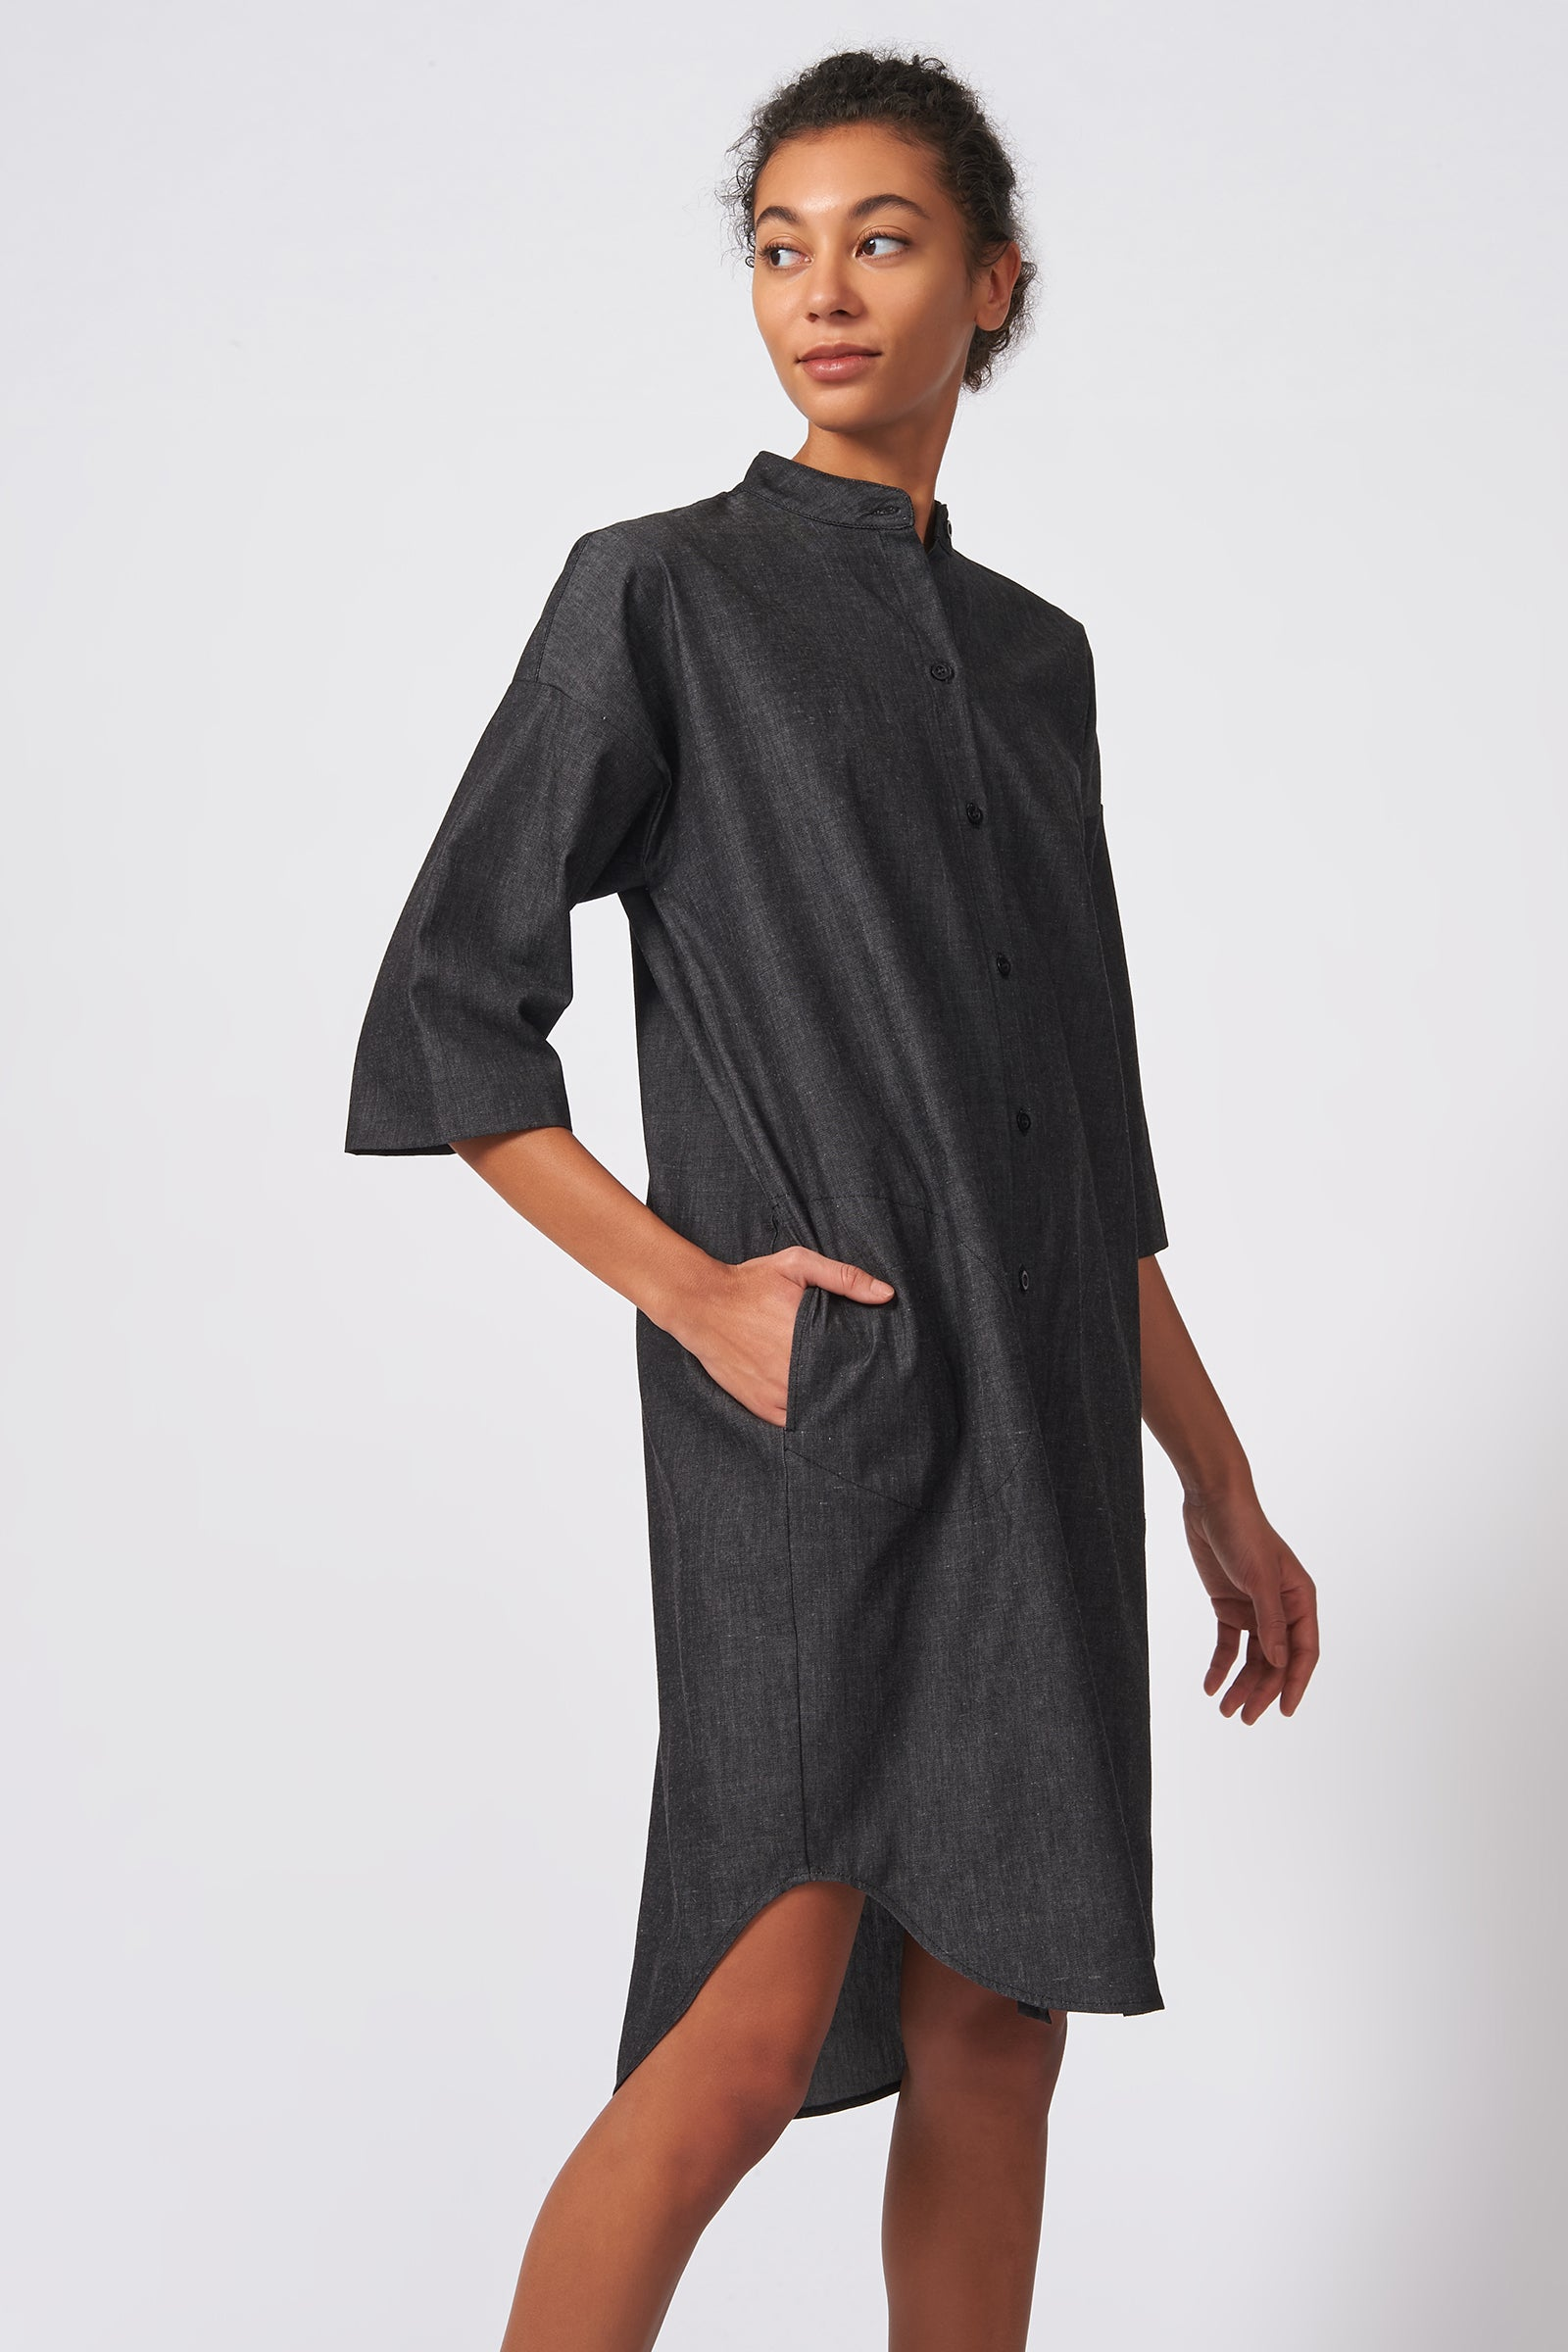 Kal Rieman Drop Sleeve Shirt Dress in Dark Denim on Model Front Side View